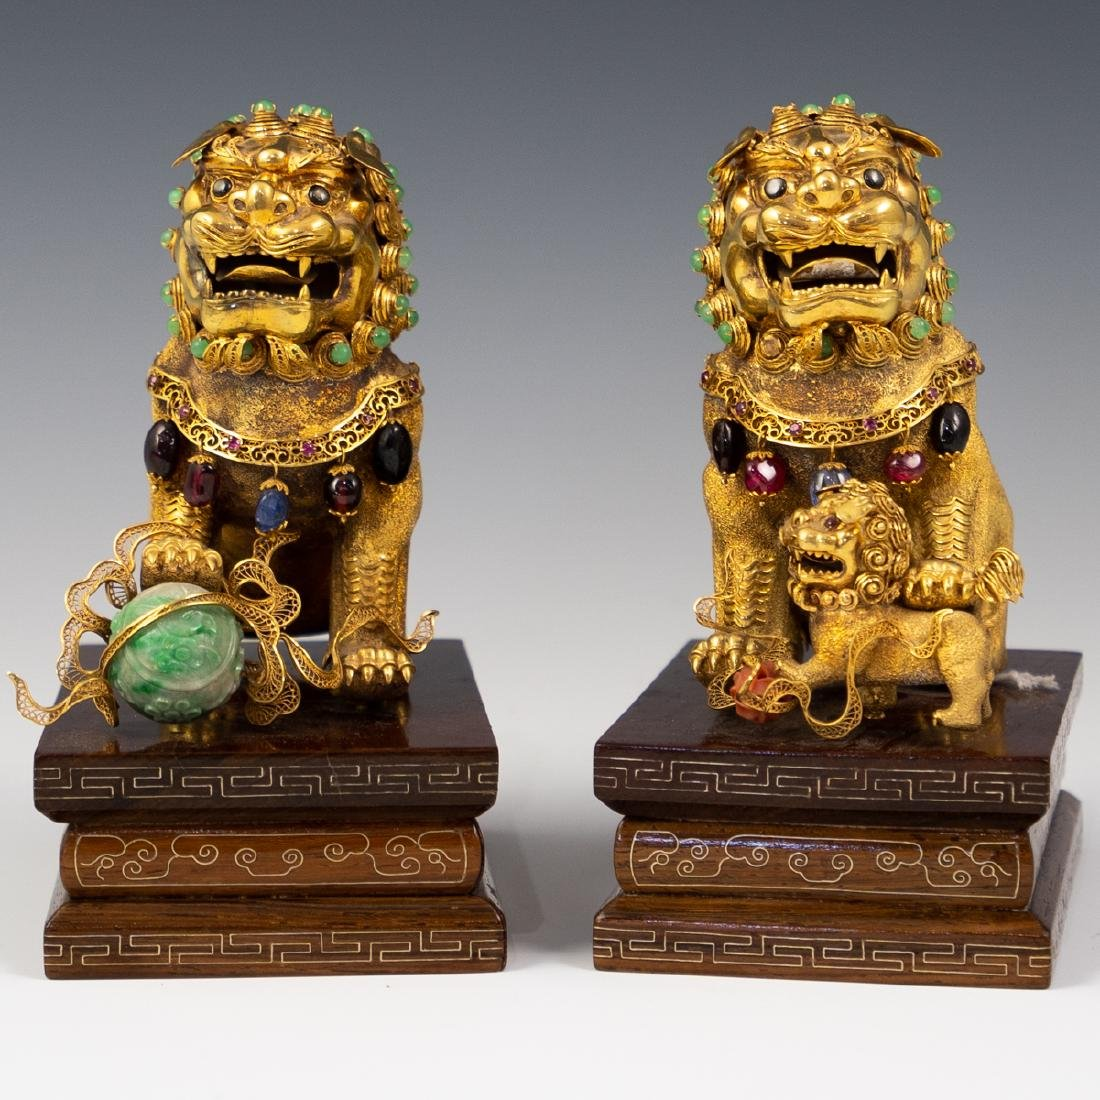 14K Solid Gold and Precious Stone Foo Dog